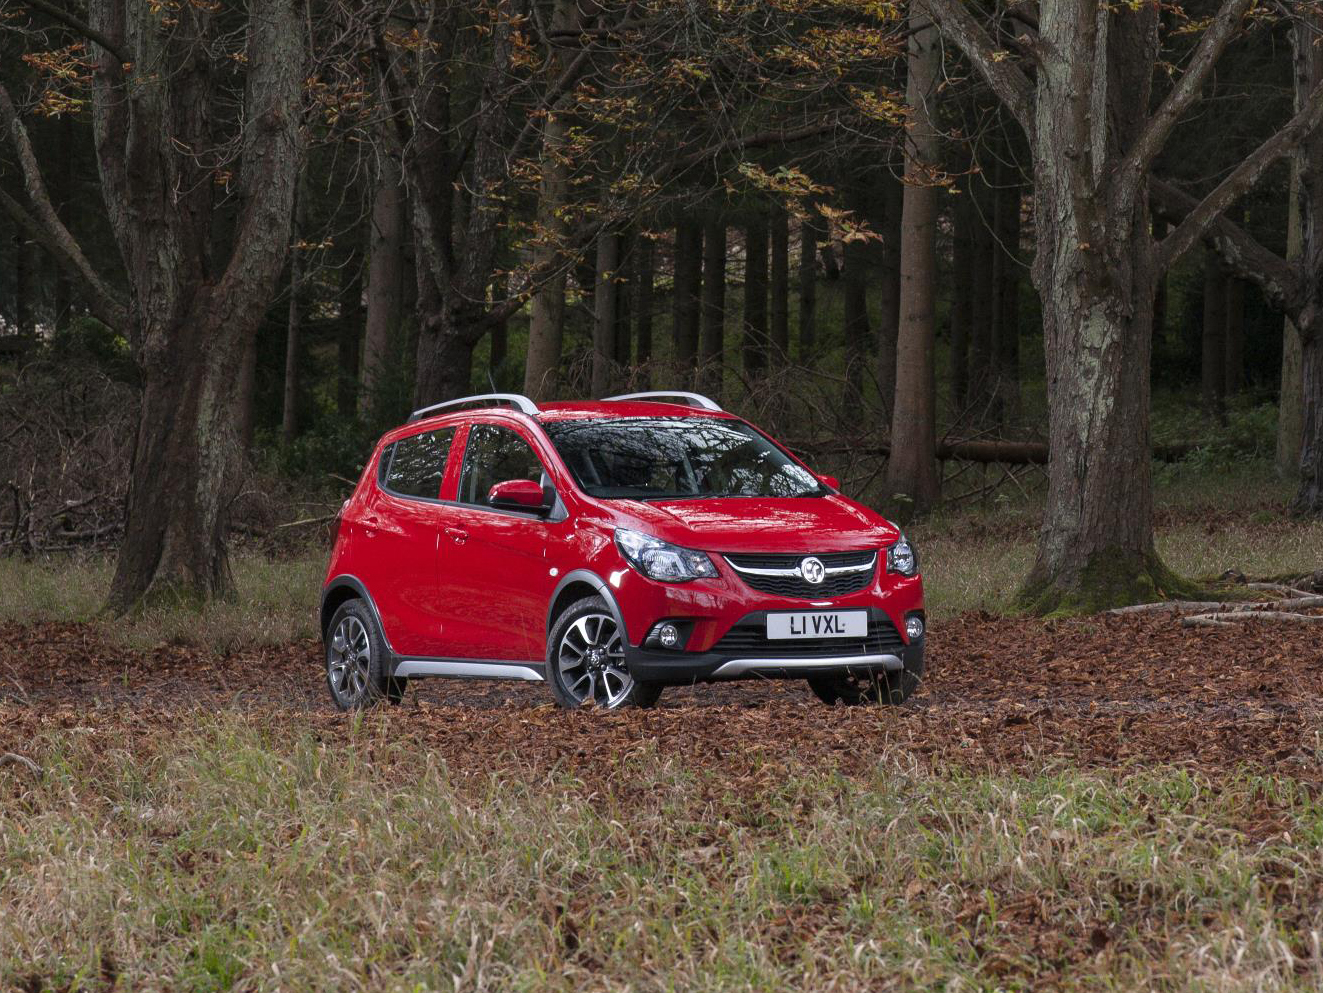 The Vauxhall Viva Rocks has just gone on sale across the UK